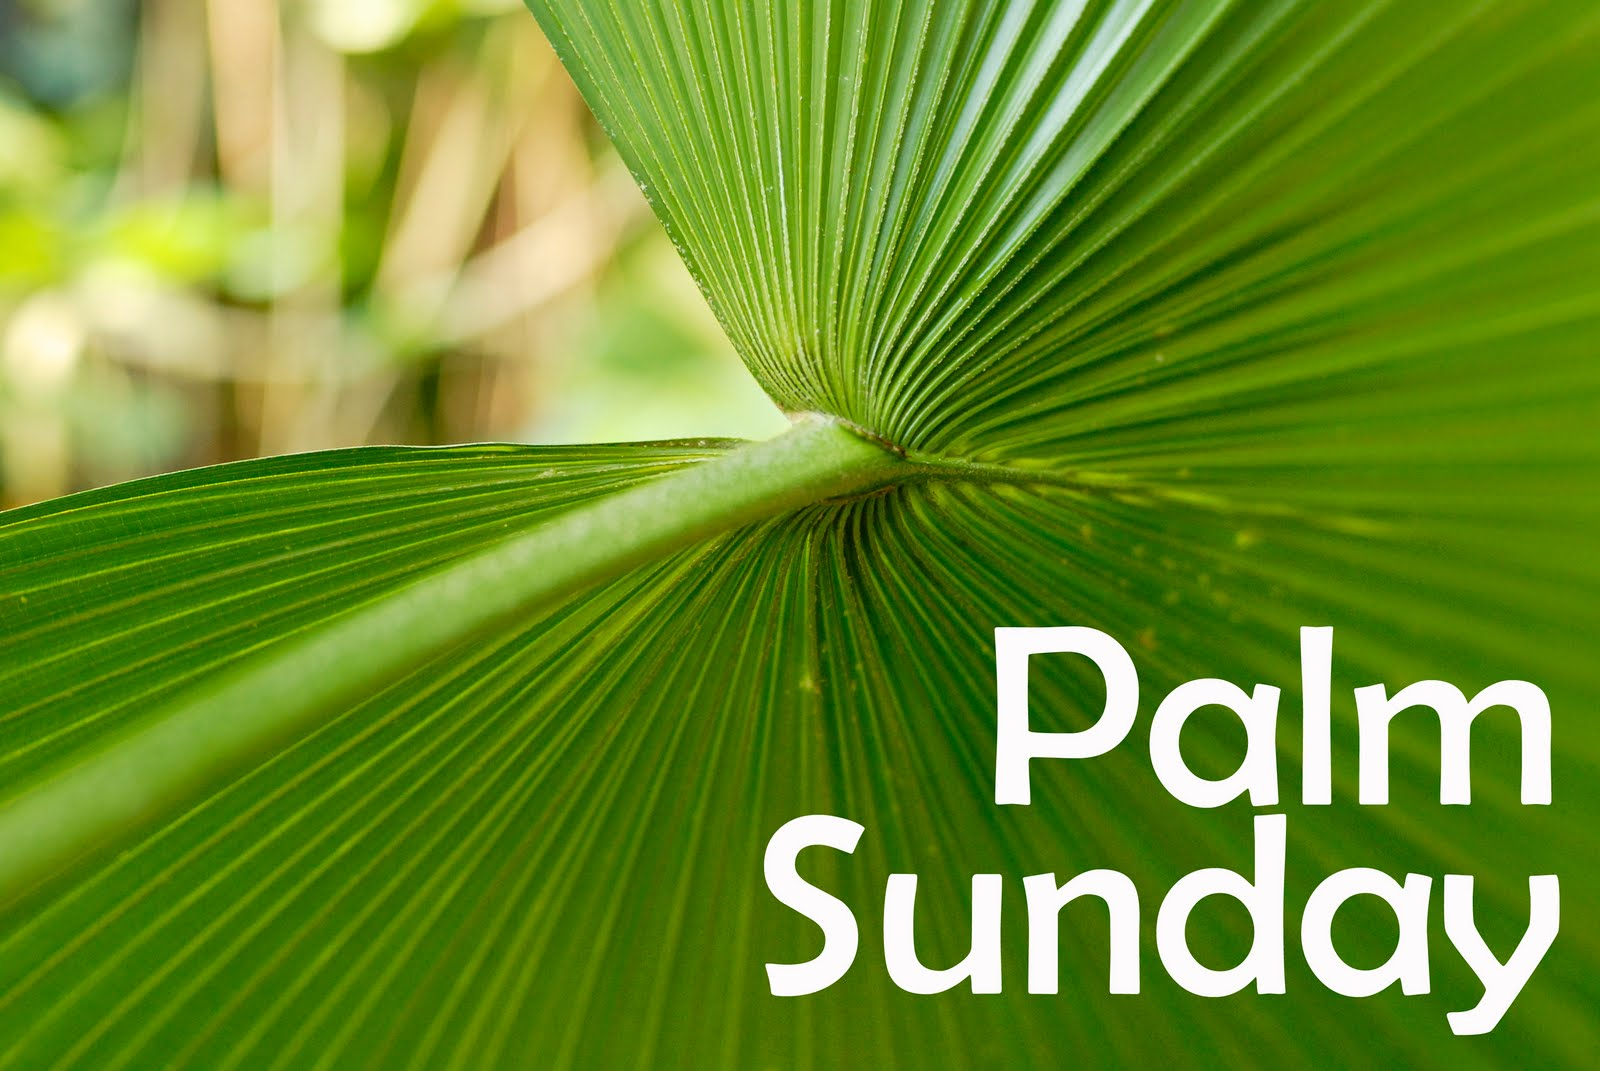 palm sunday What happened on palm sunday and how is palm sunday celebrated those questions, and more, are answered in this very brief, very basic primer on the pre-easter holiday.